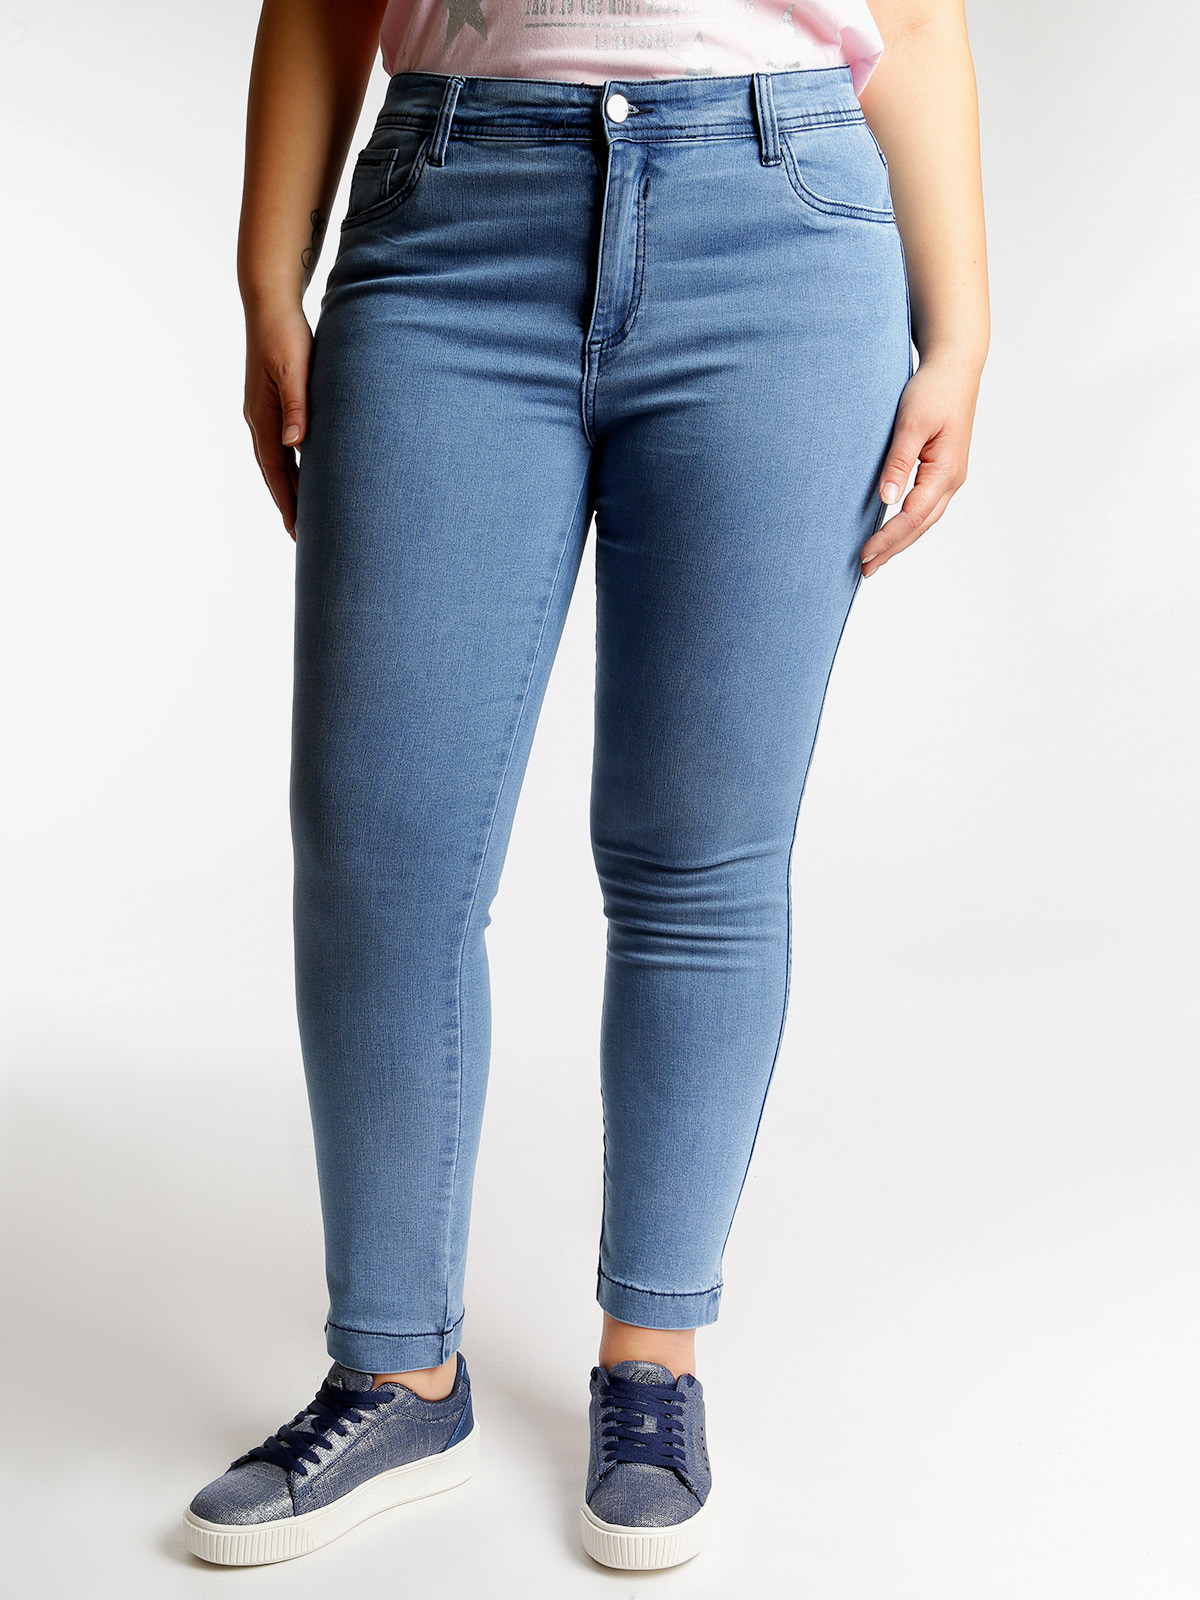 Stretch Jeans With Rhinestones Behind